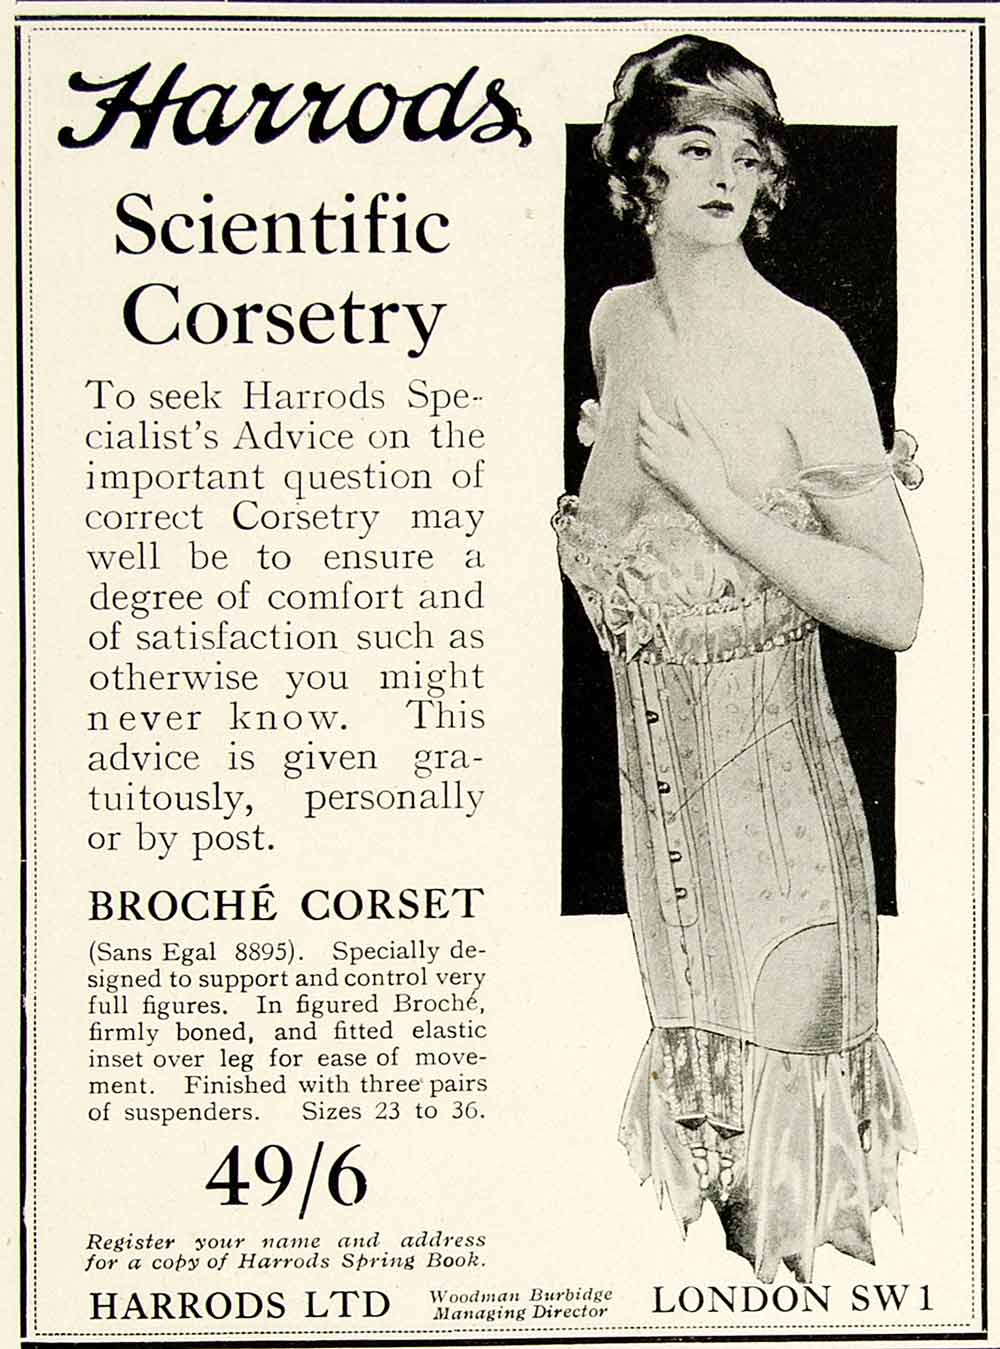 1918 Ad Harrods Scientific Corsetry Broche Woman Fashion Clothing London YTT1